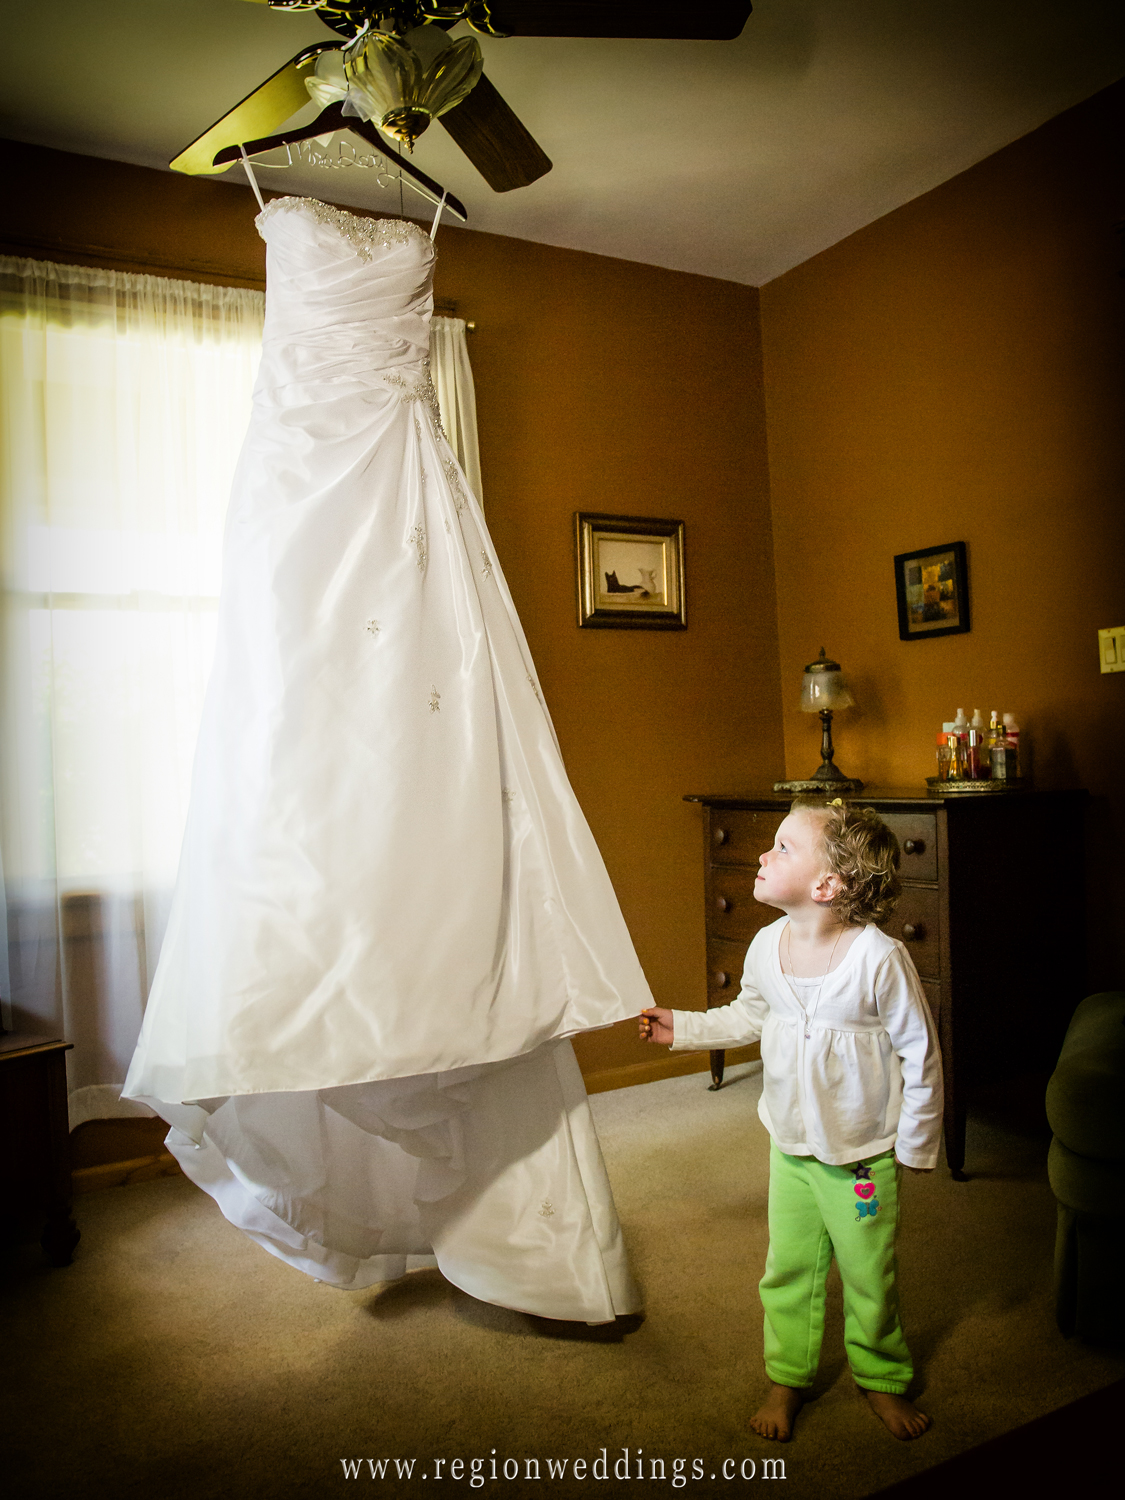 The flower girl looks up at the bride's hanging dress in the cute wedding photo.